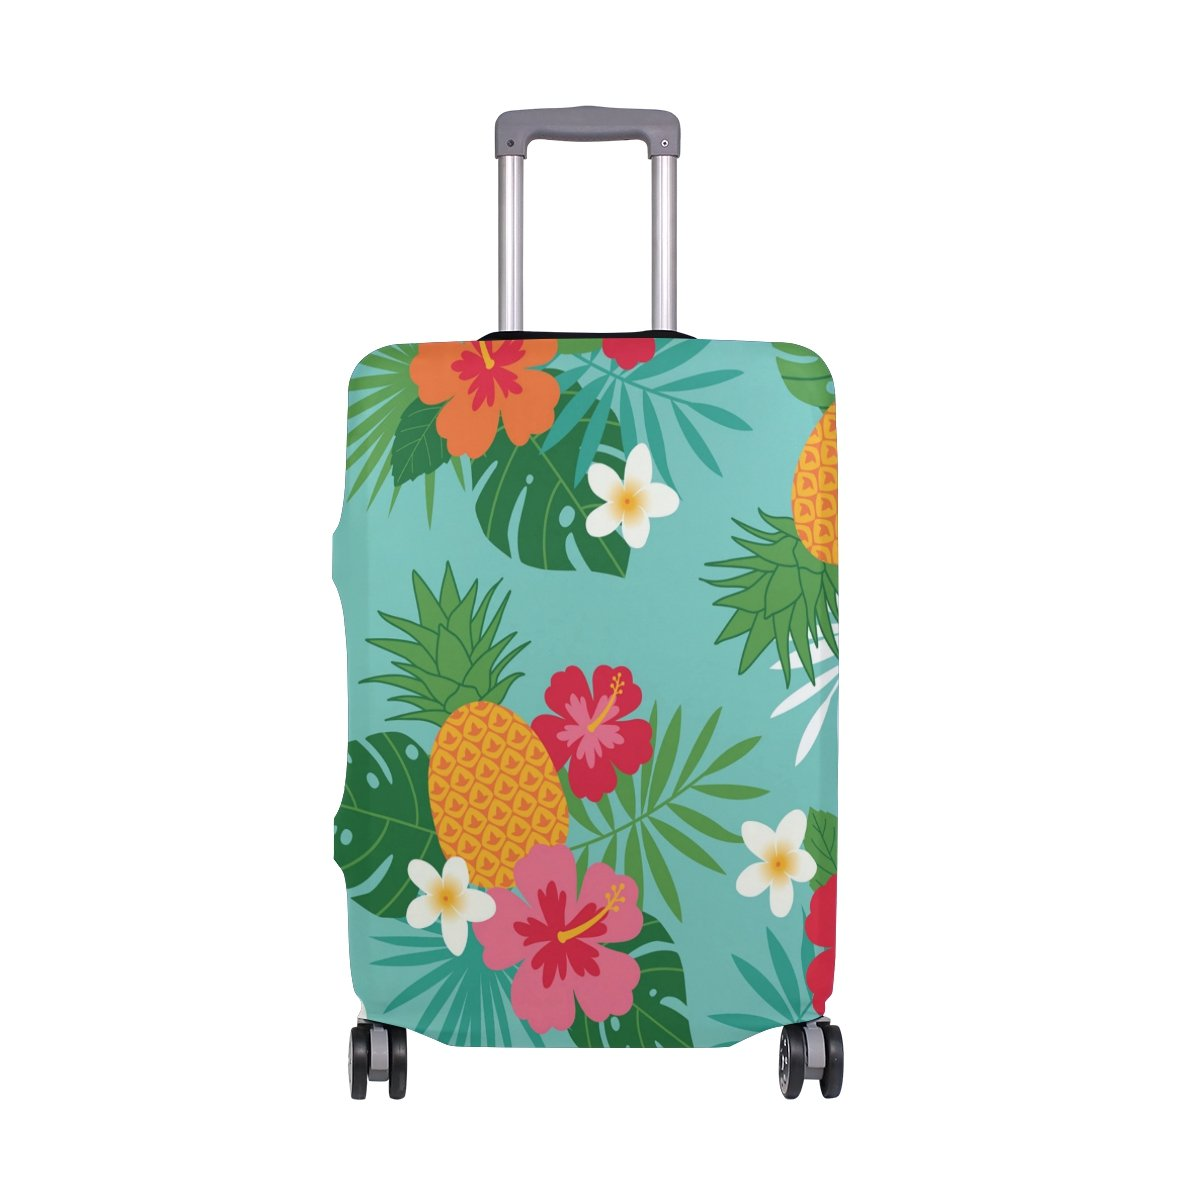 OREZI 3D Tropical Summer Pattern Luggage Protector Suitcase Cover 18-32 Inch